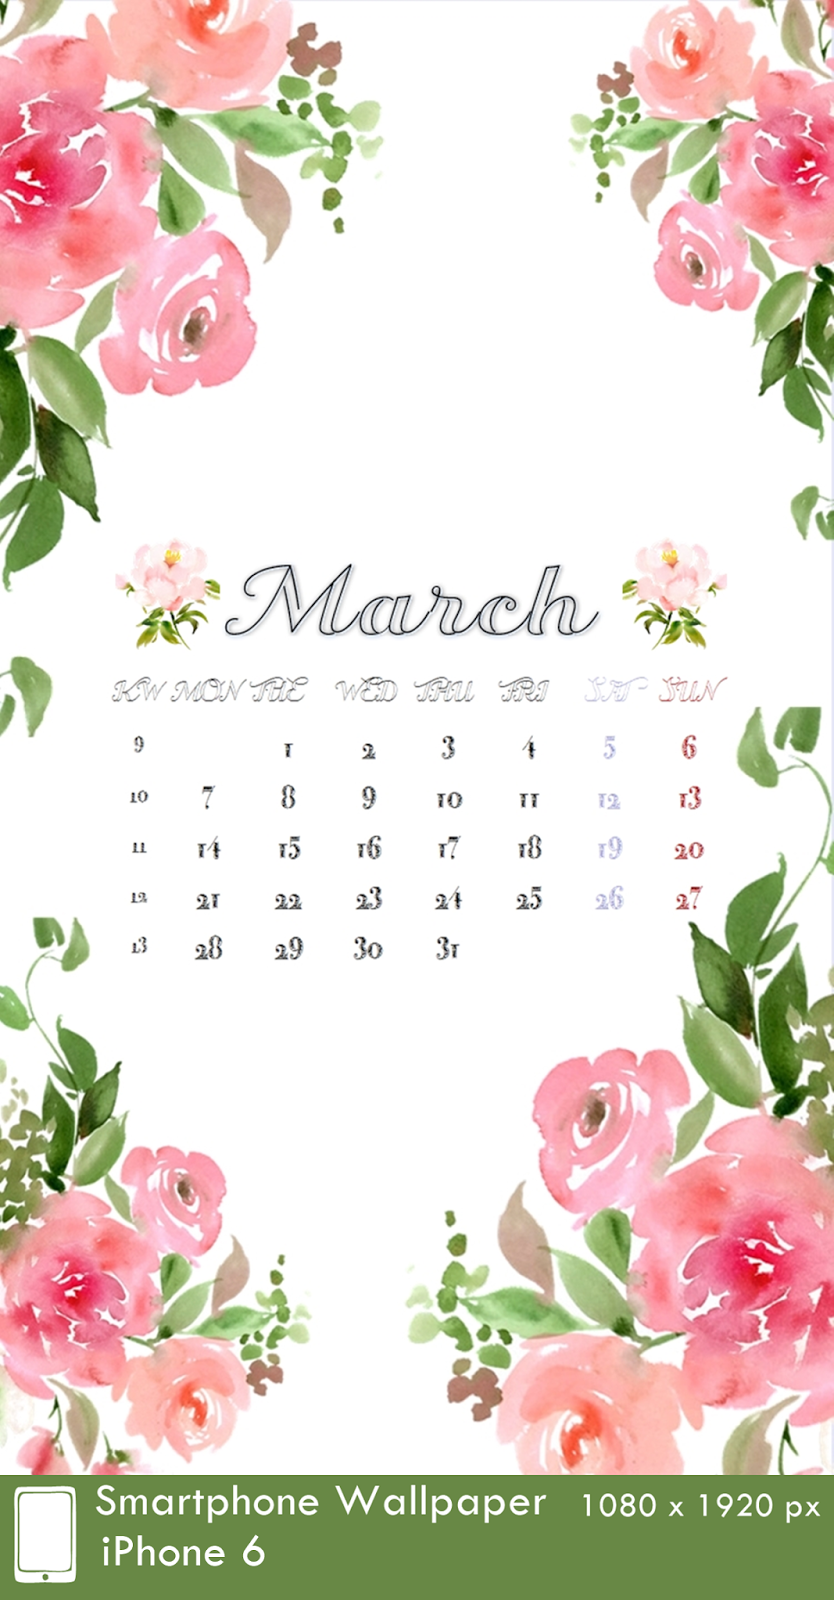 iPhone 6 Wallpaper Calendar 3 March 1080 x 1920 px